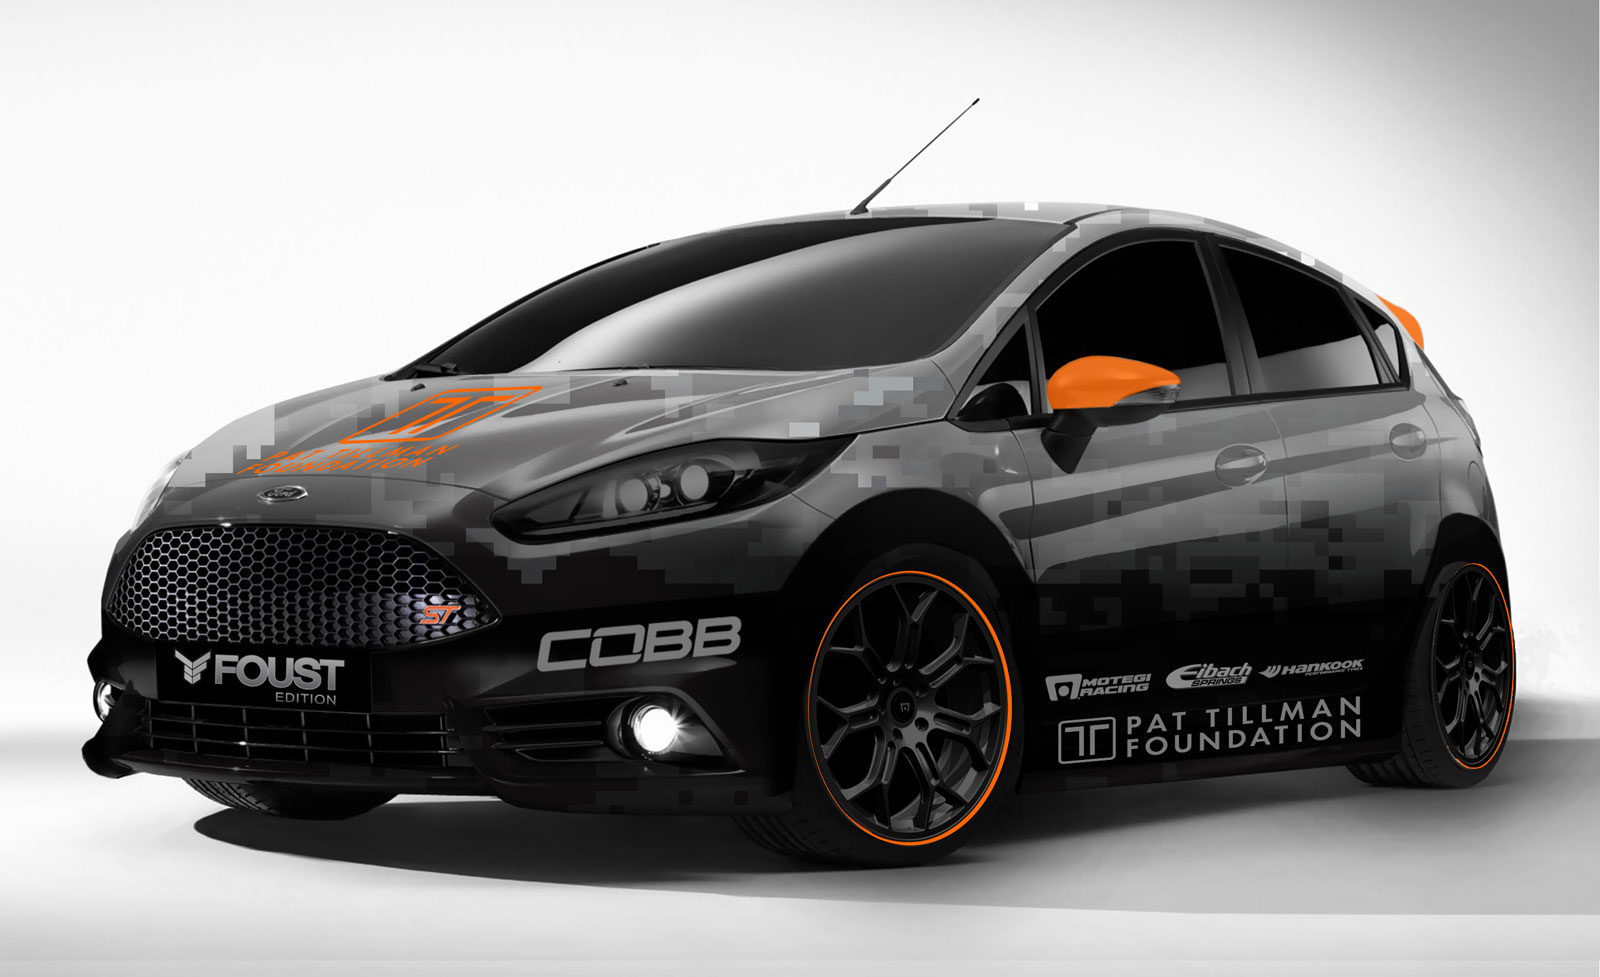 Ford Fiesta ST by COBB Foust